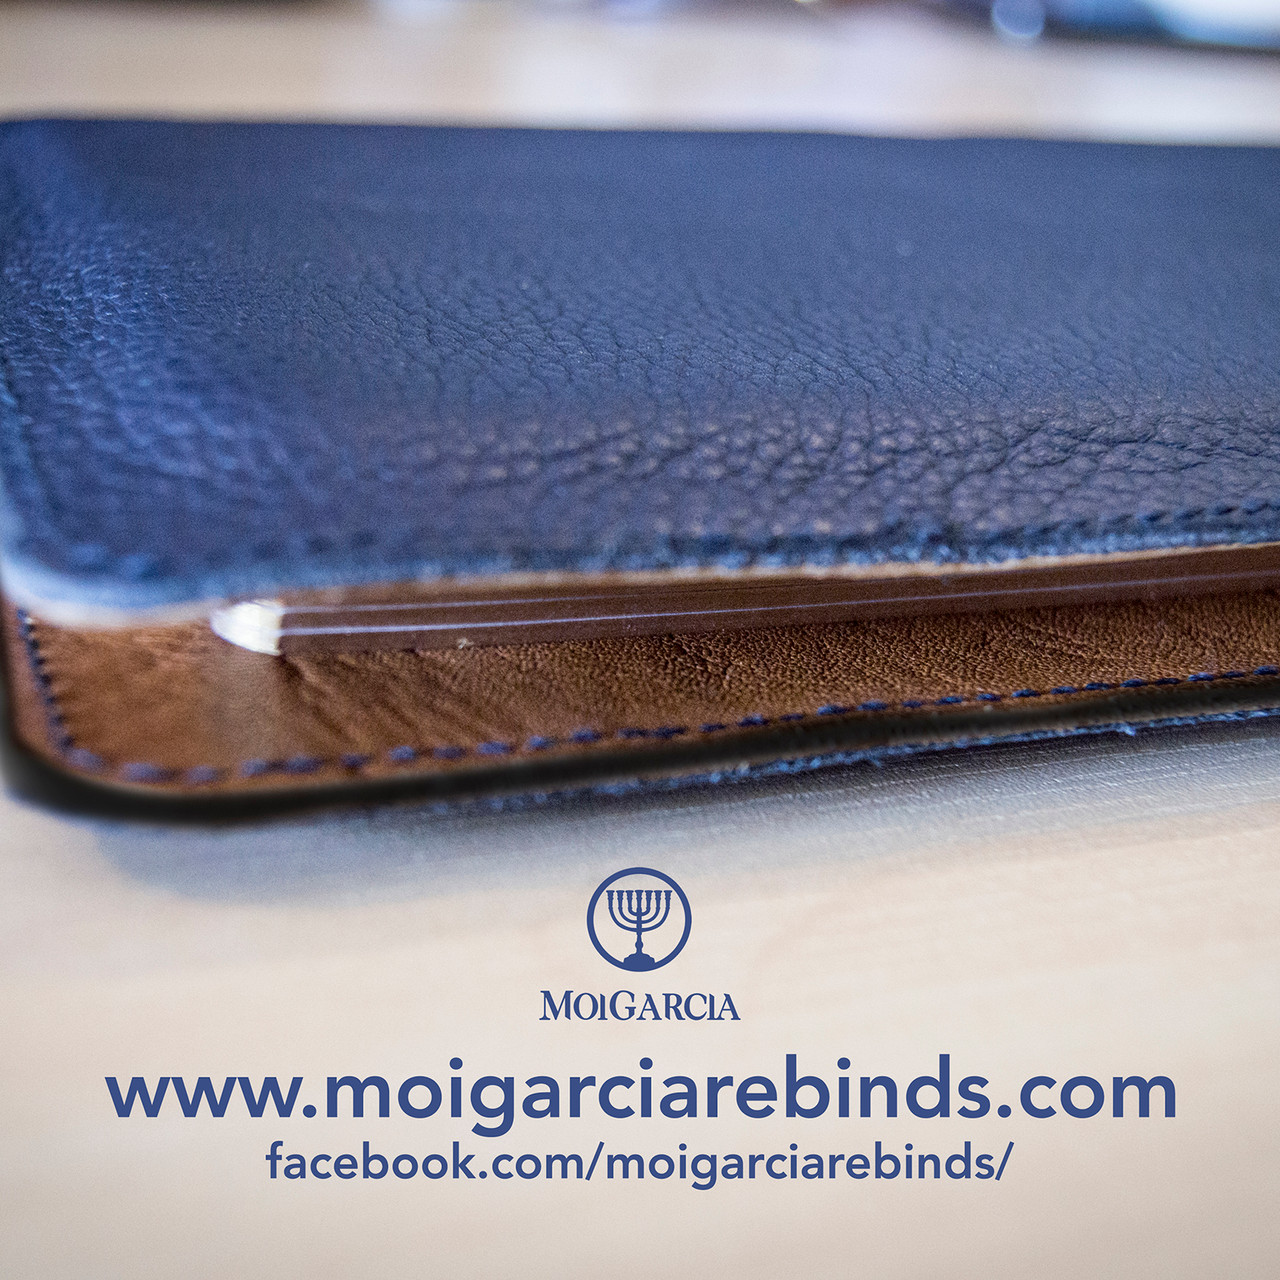 Navy blue cowhide notebook cover